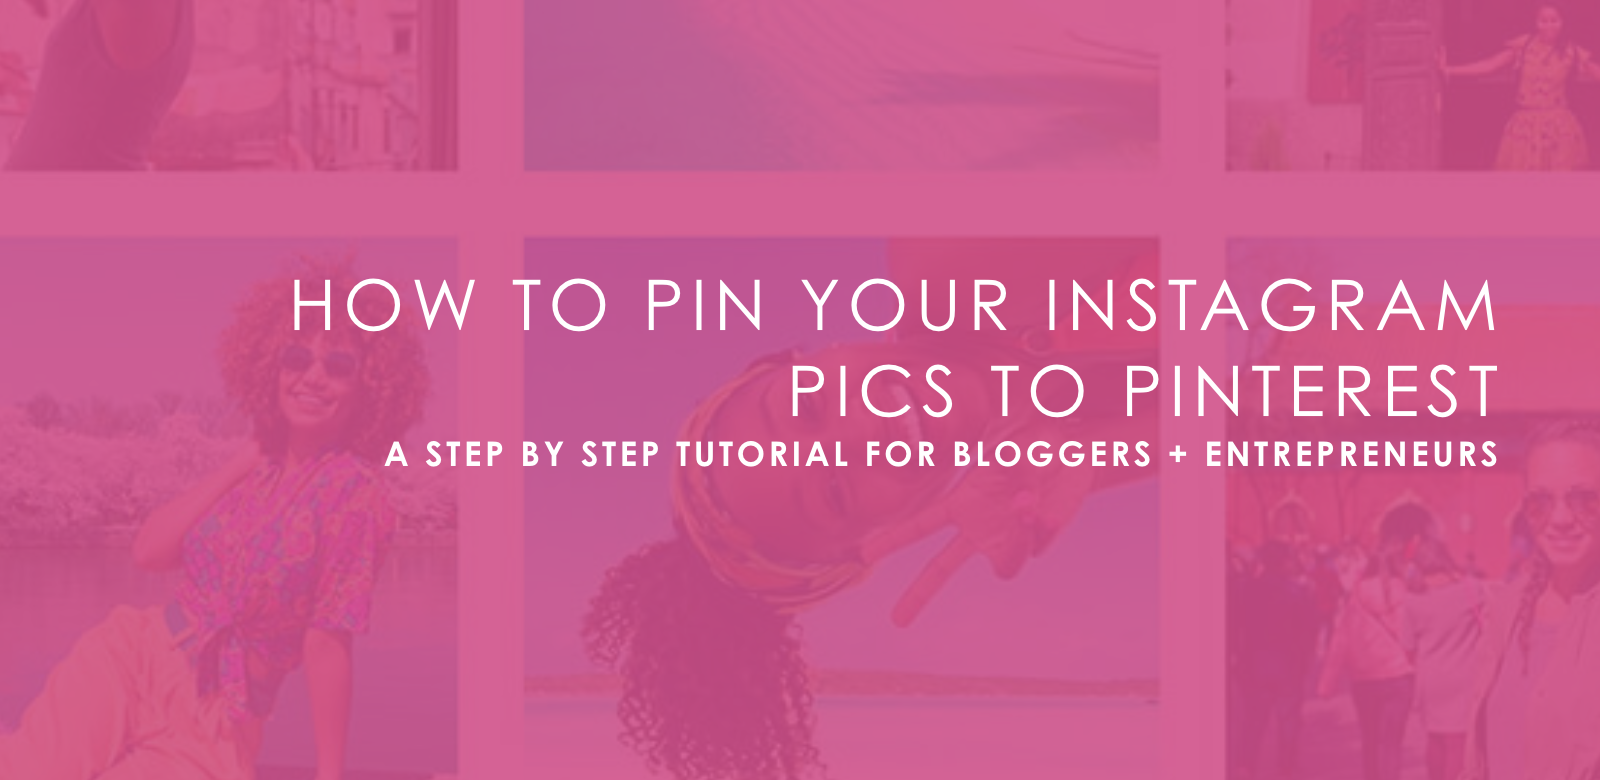 HOW TO PIN YOUR INSTAGRAM PICTURES TO PINTEREST